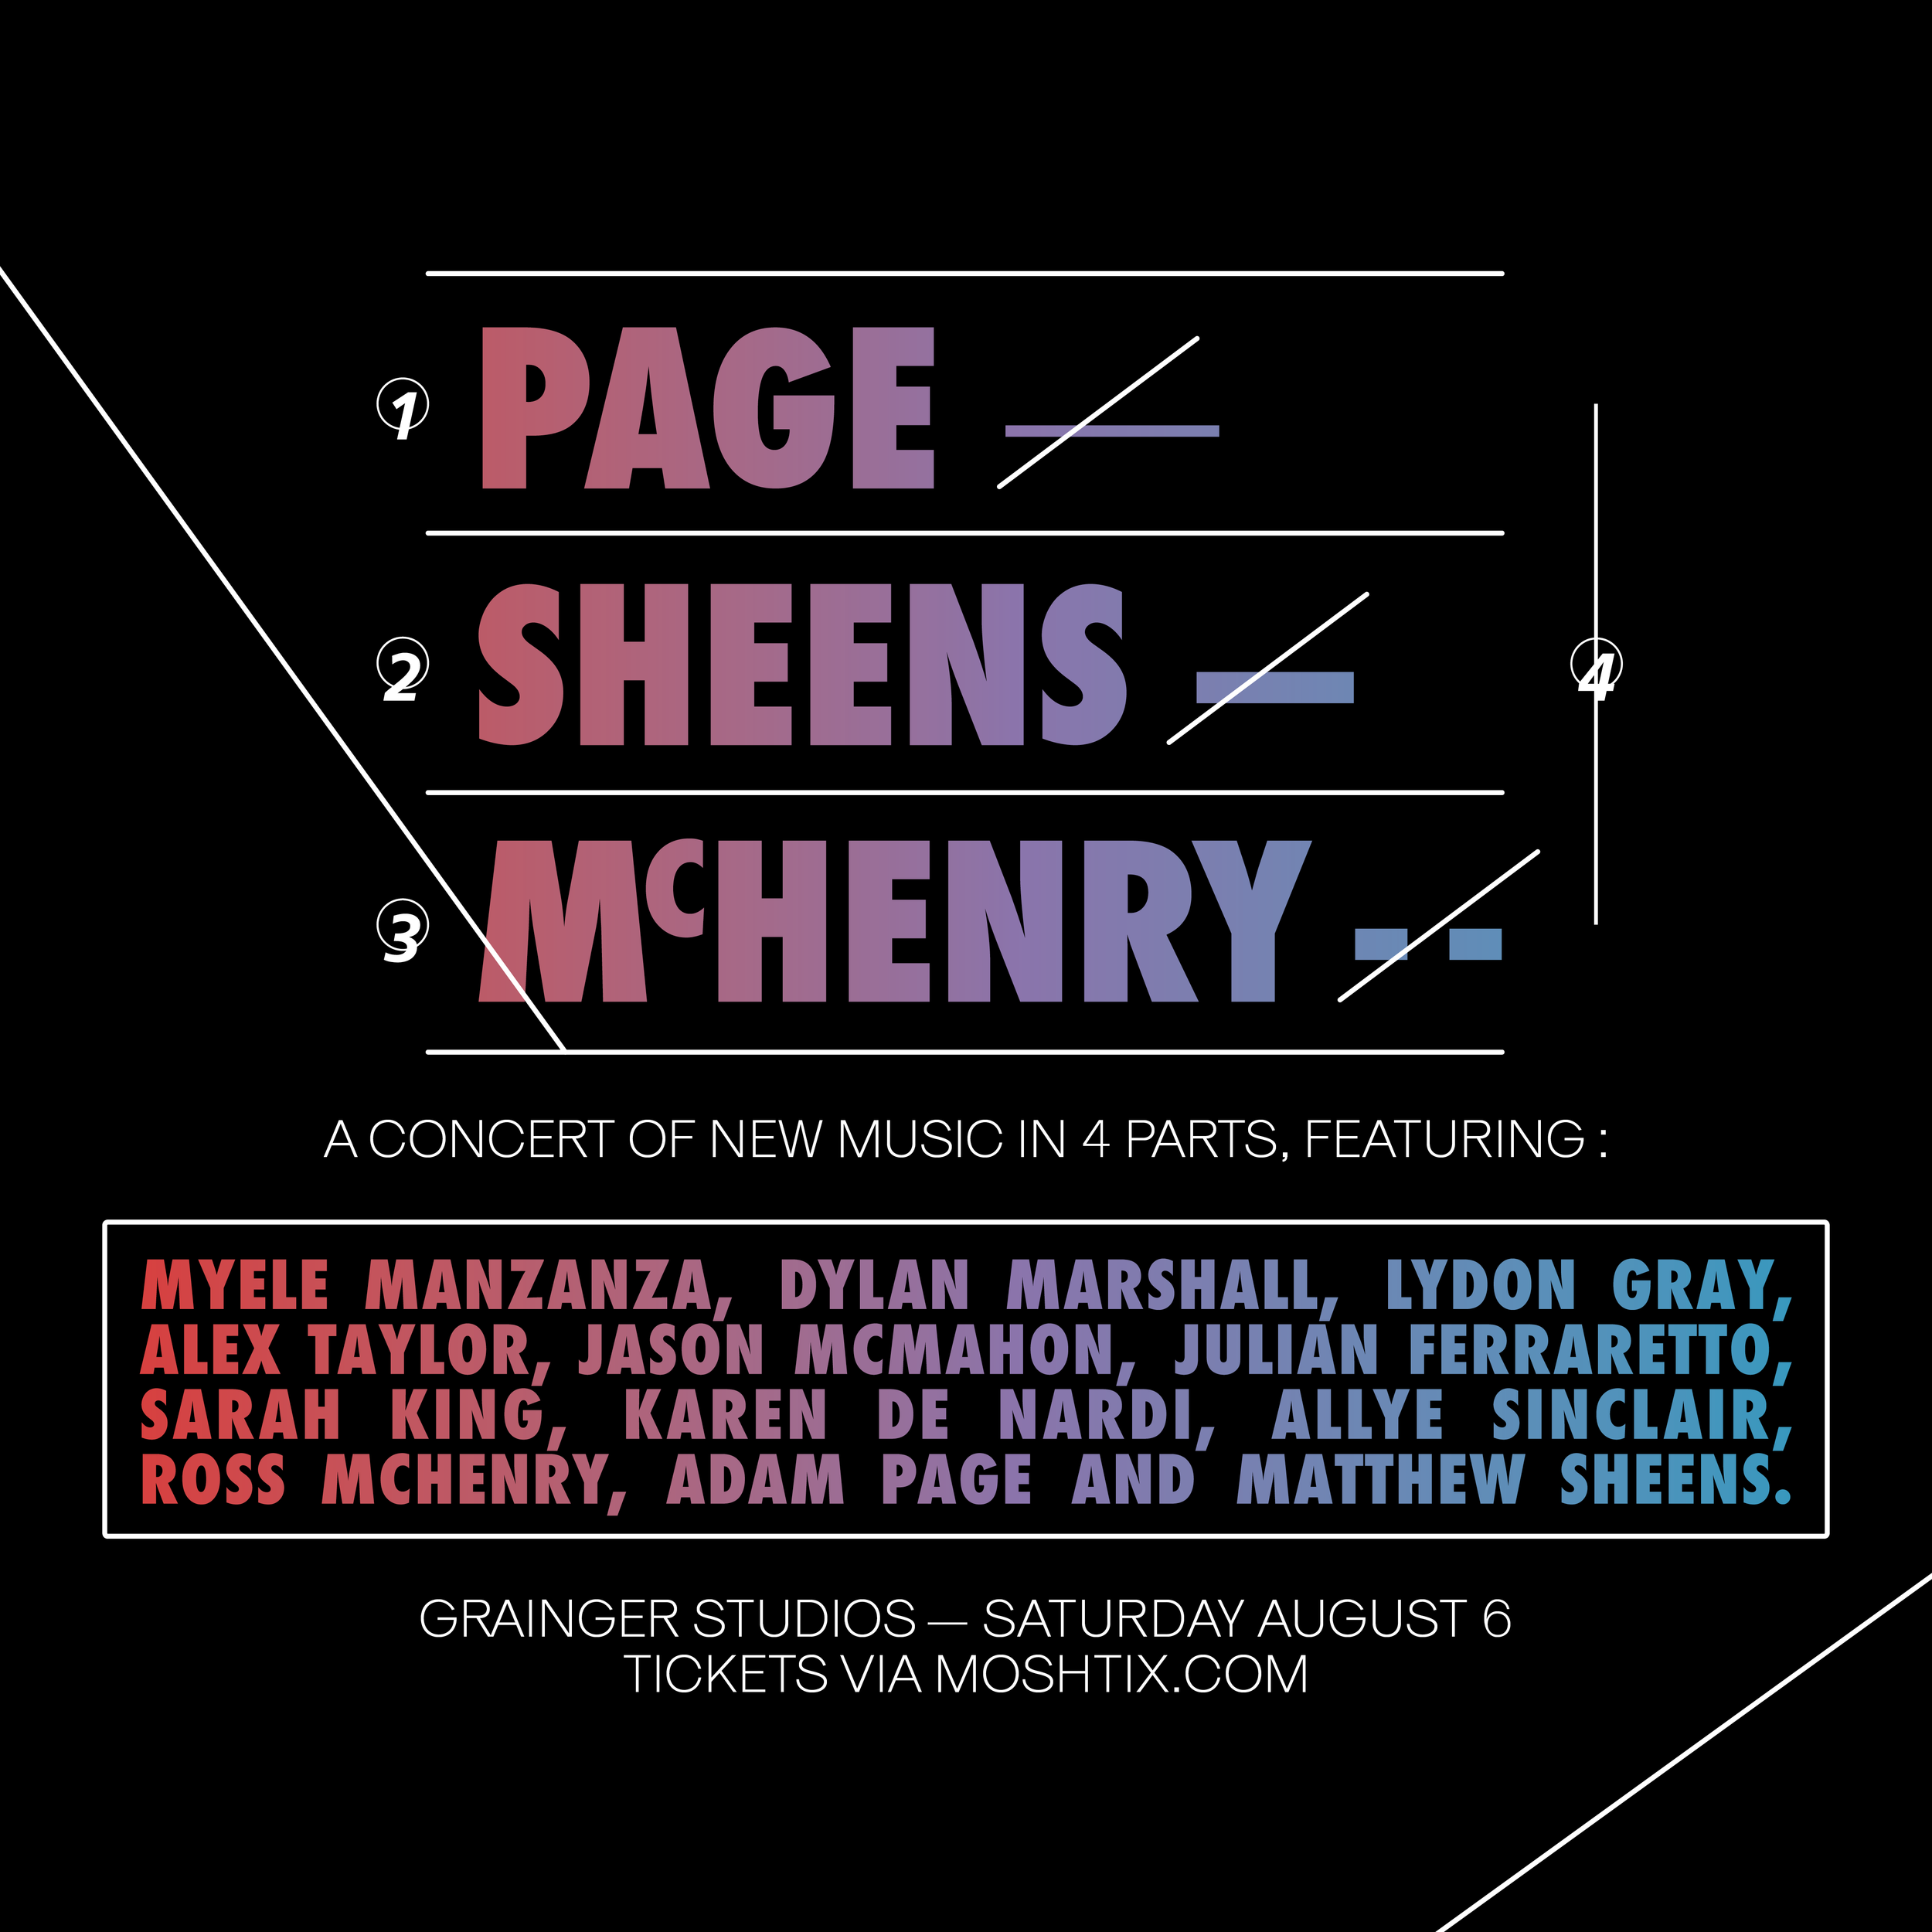 PAGE - SHEENS - MCHENRY